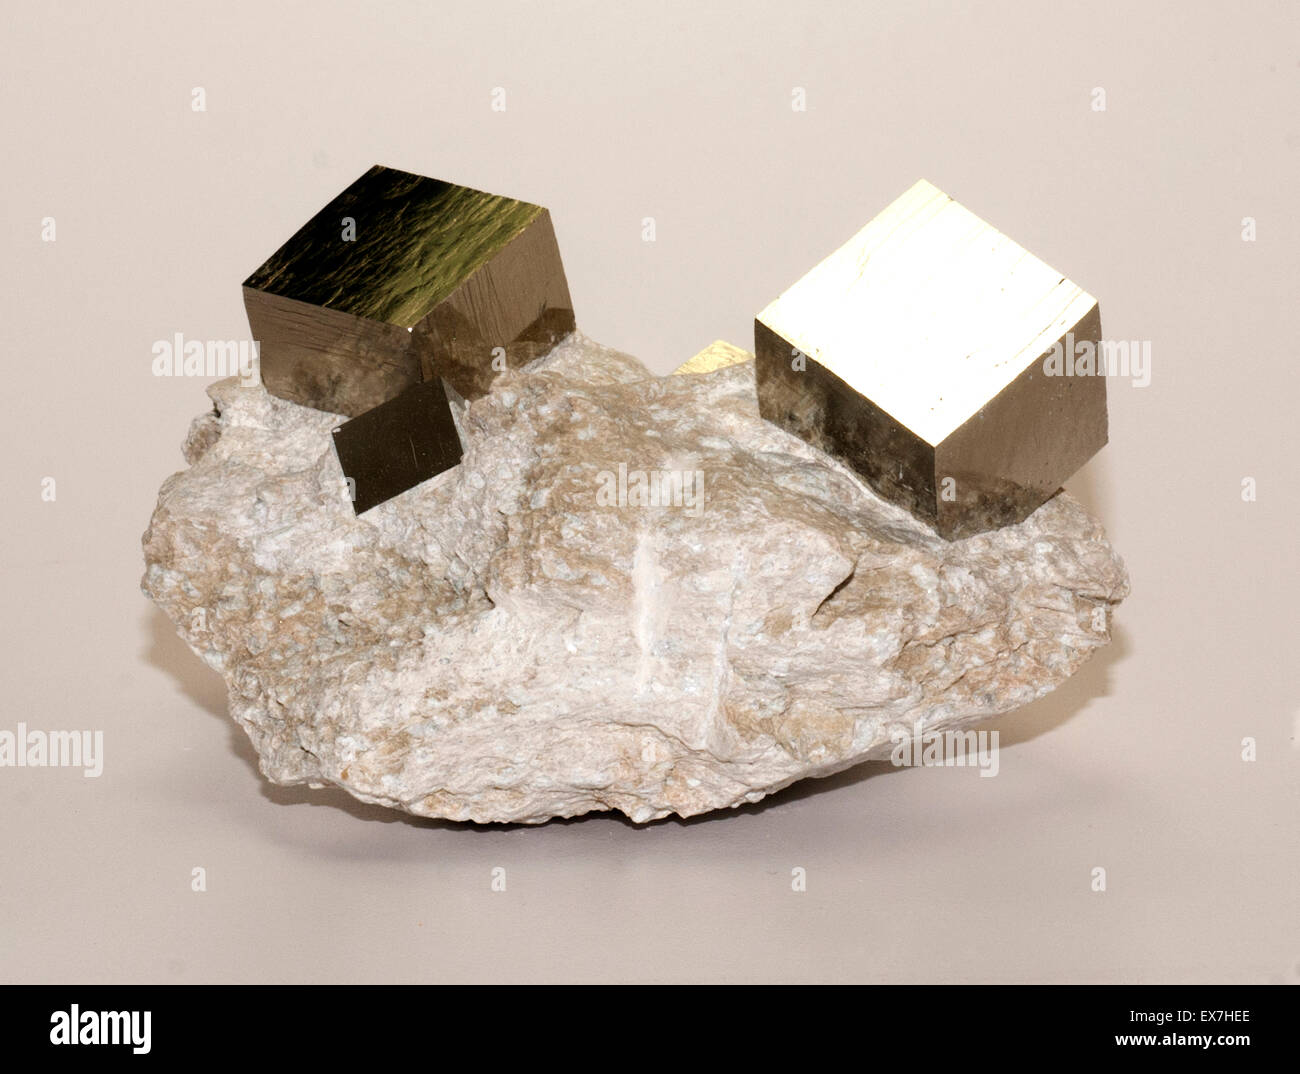 Iron pyrite cubic crystals in matrix - Stock Image